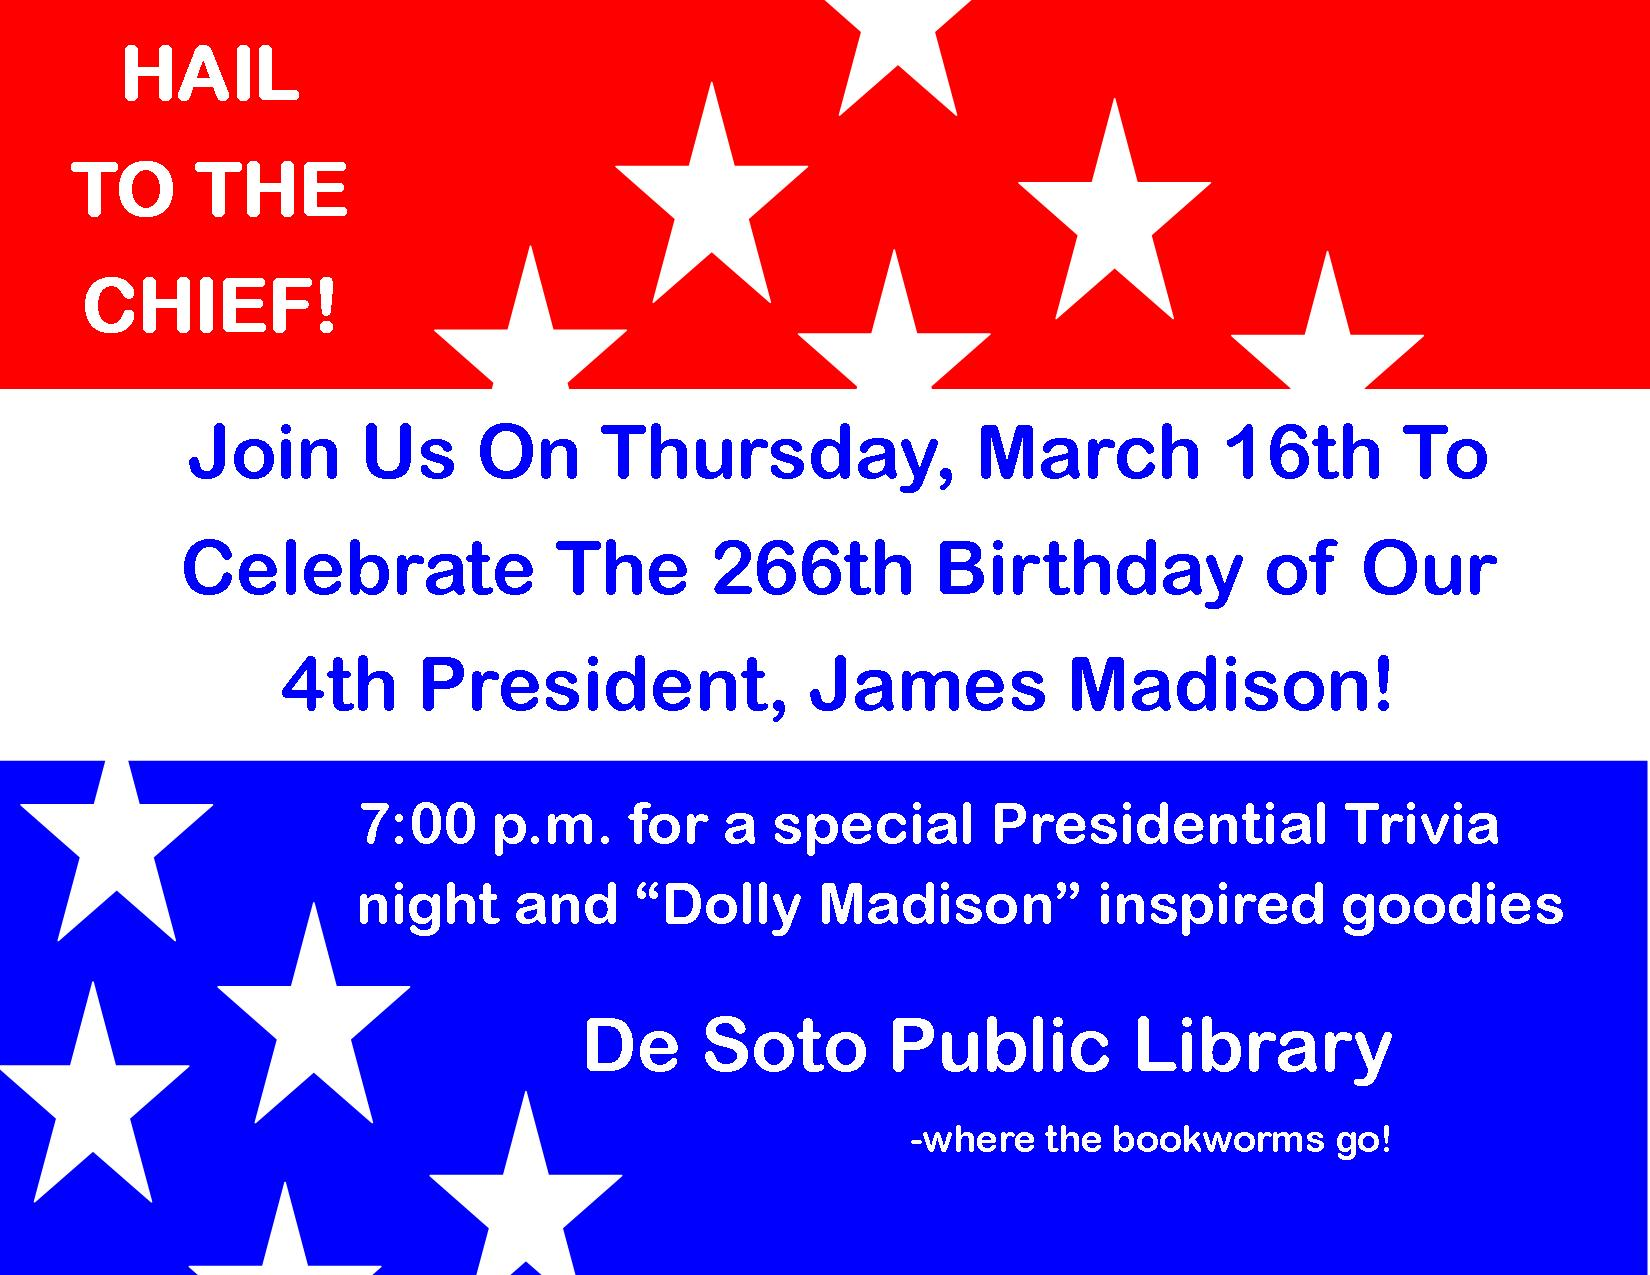 Hail to the chief trivia night flier